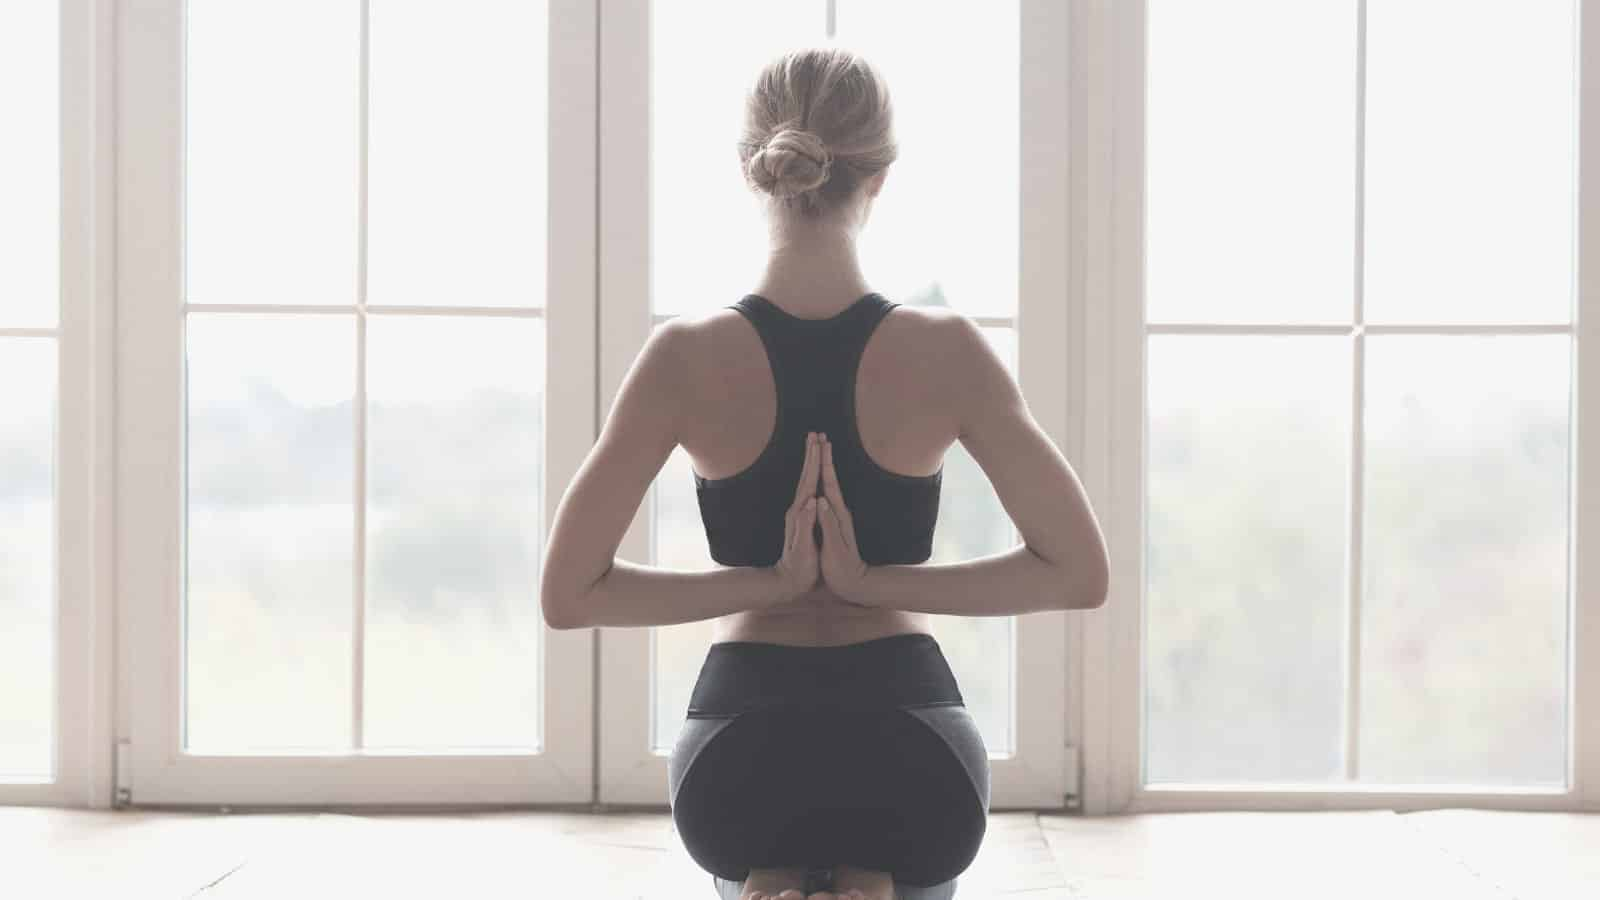 How to prepare for meditation